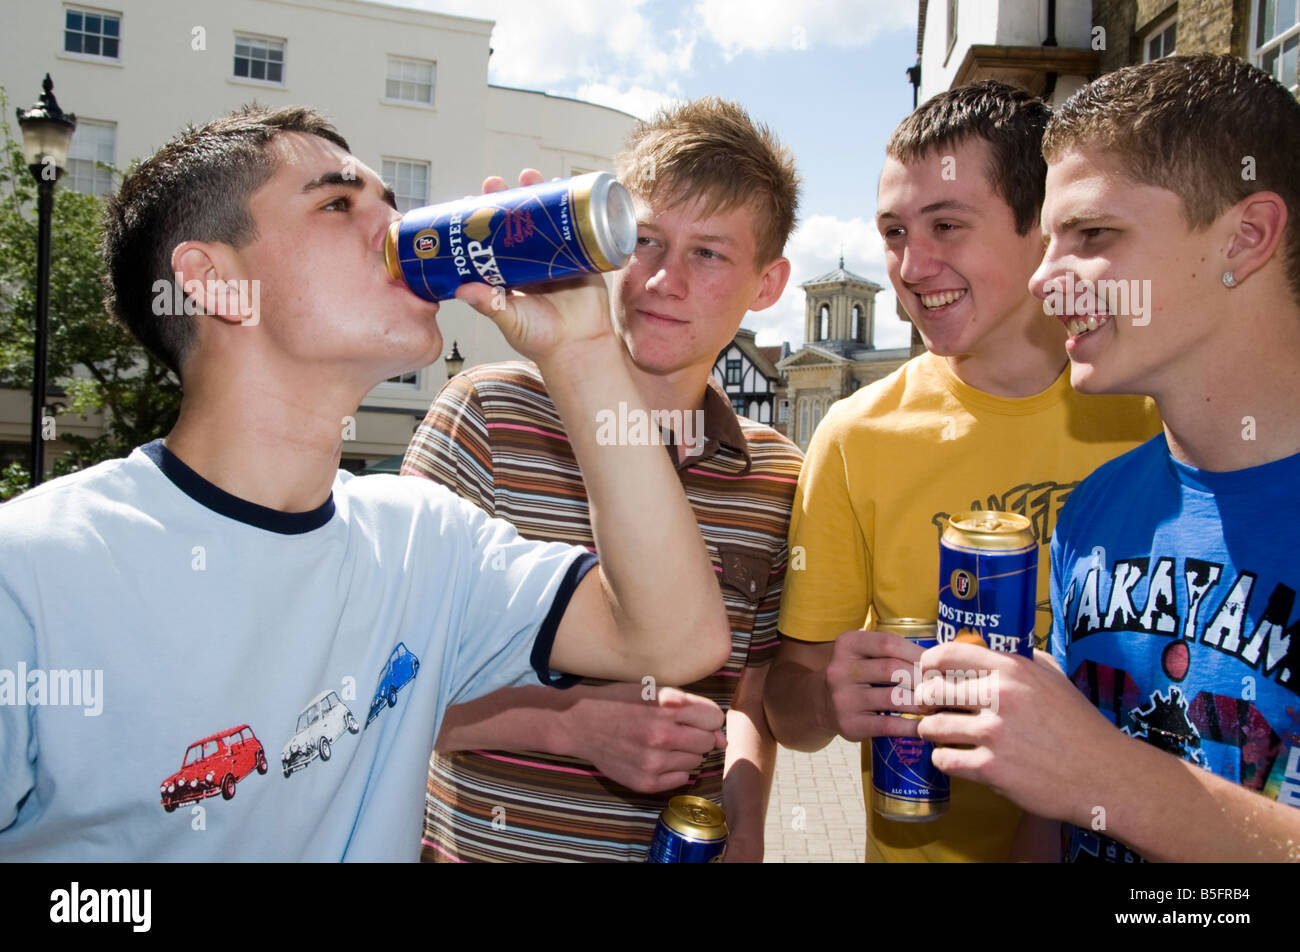 Alamy Teenage Photo Of Boys Cans - Stock 20631272 Drinking Group Beer